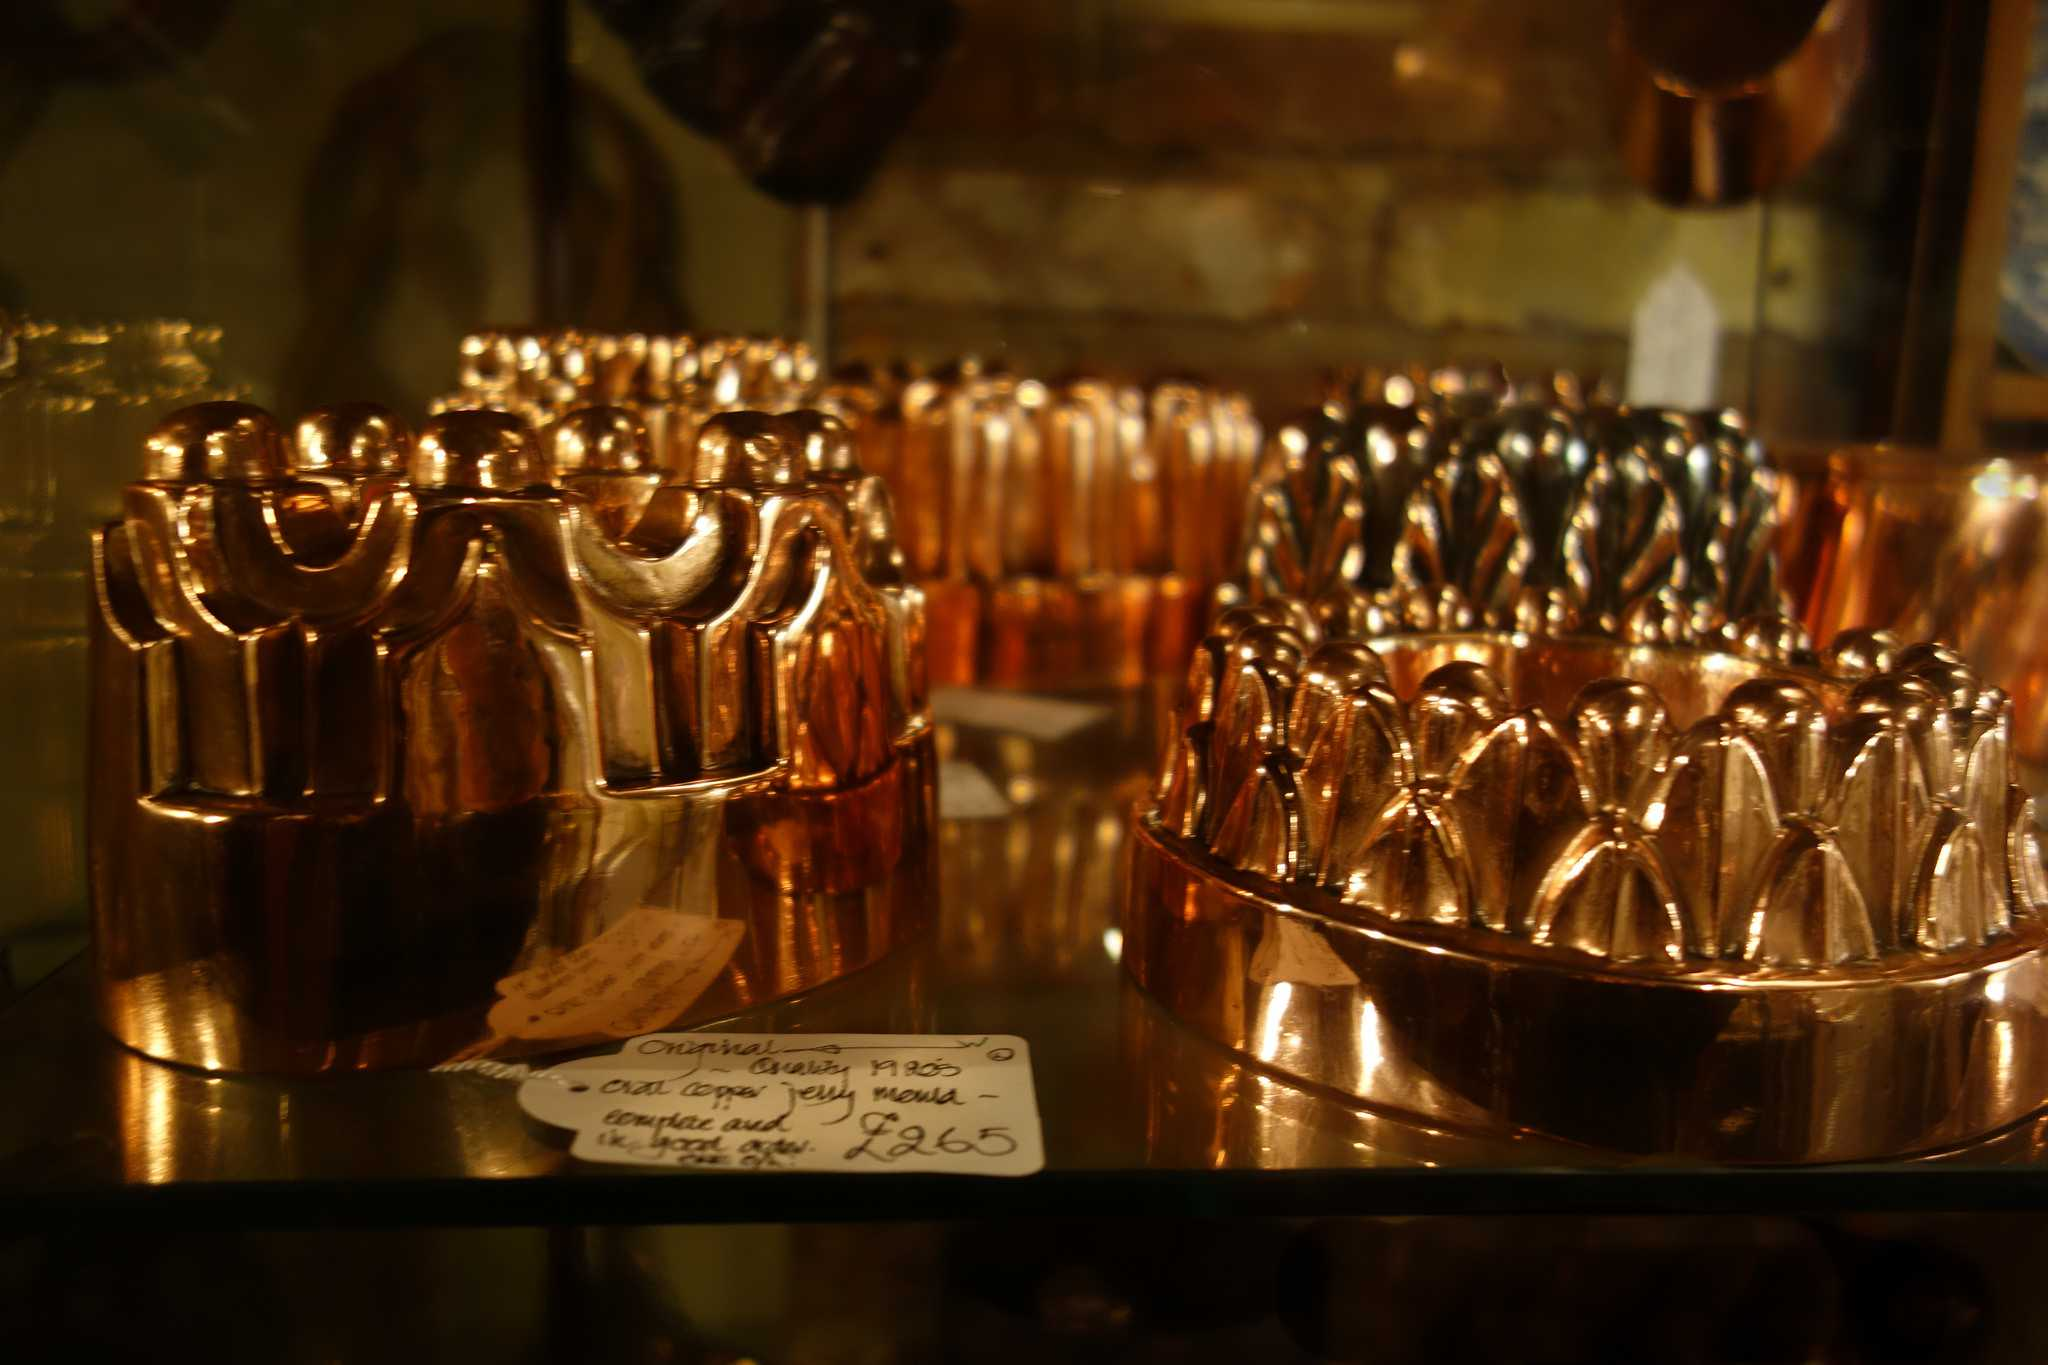 Copper Jelly Molds in an antiques shop